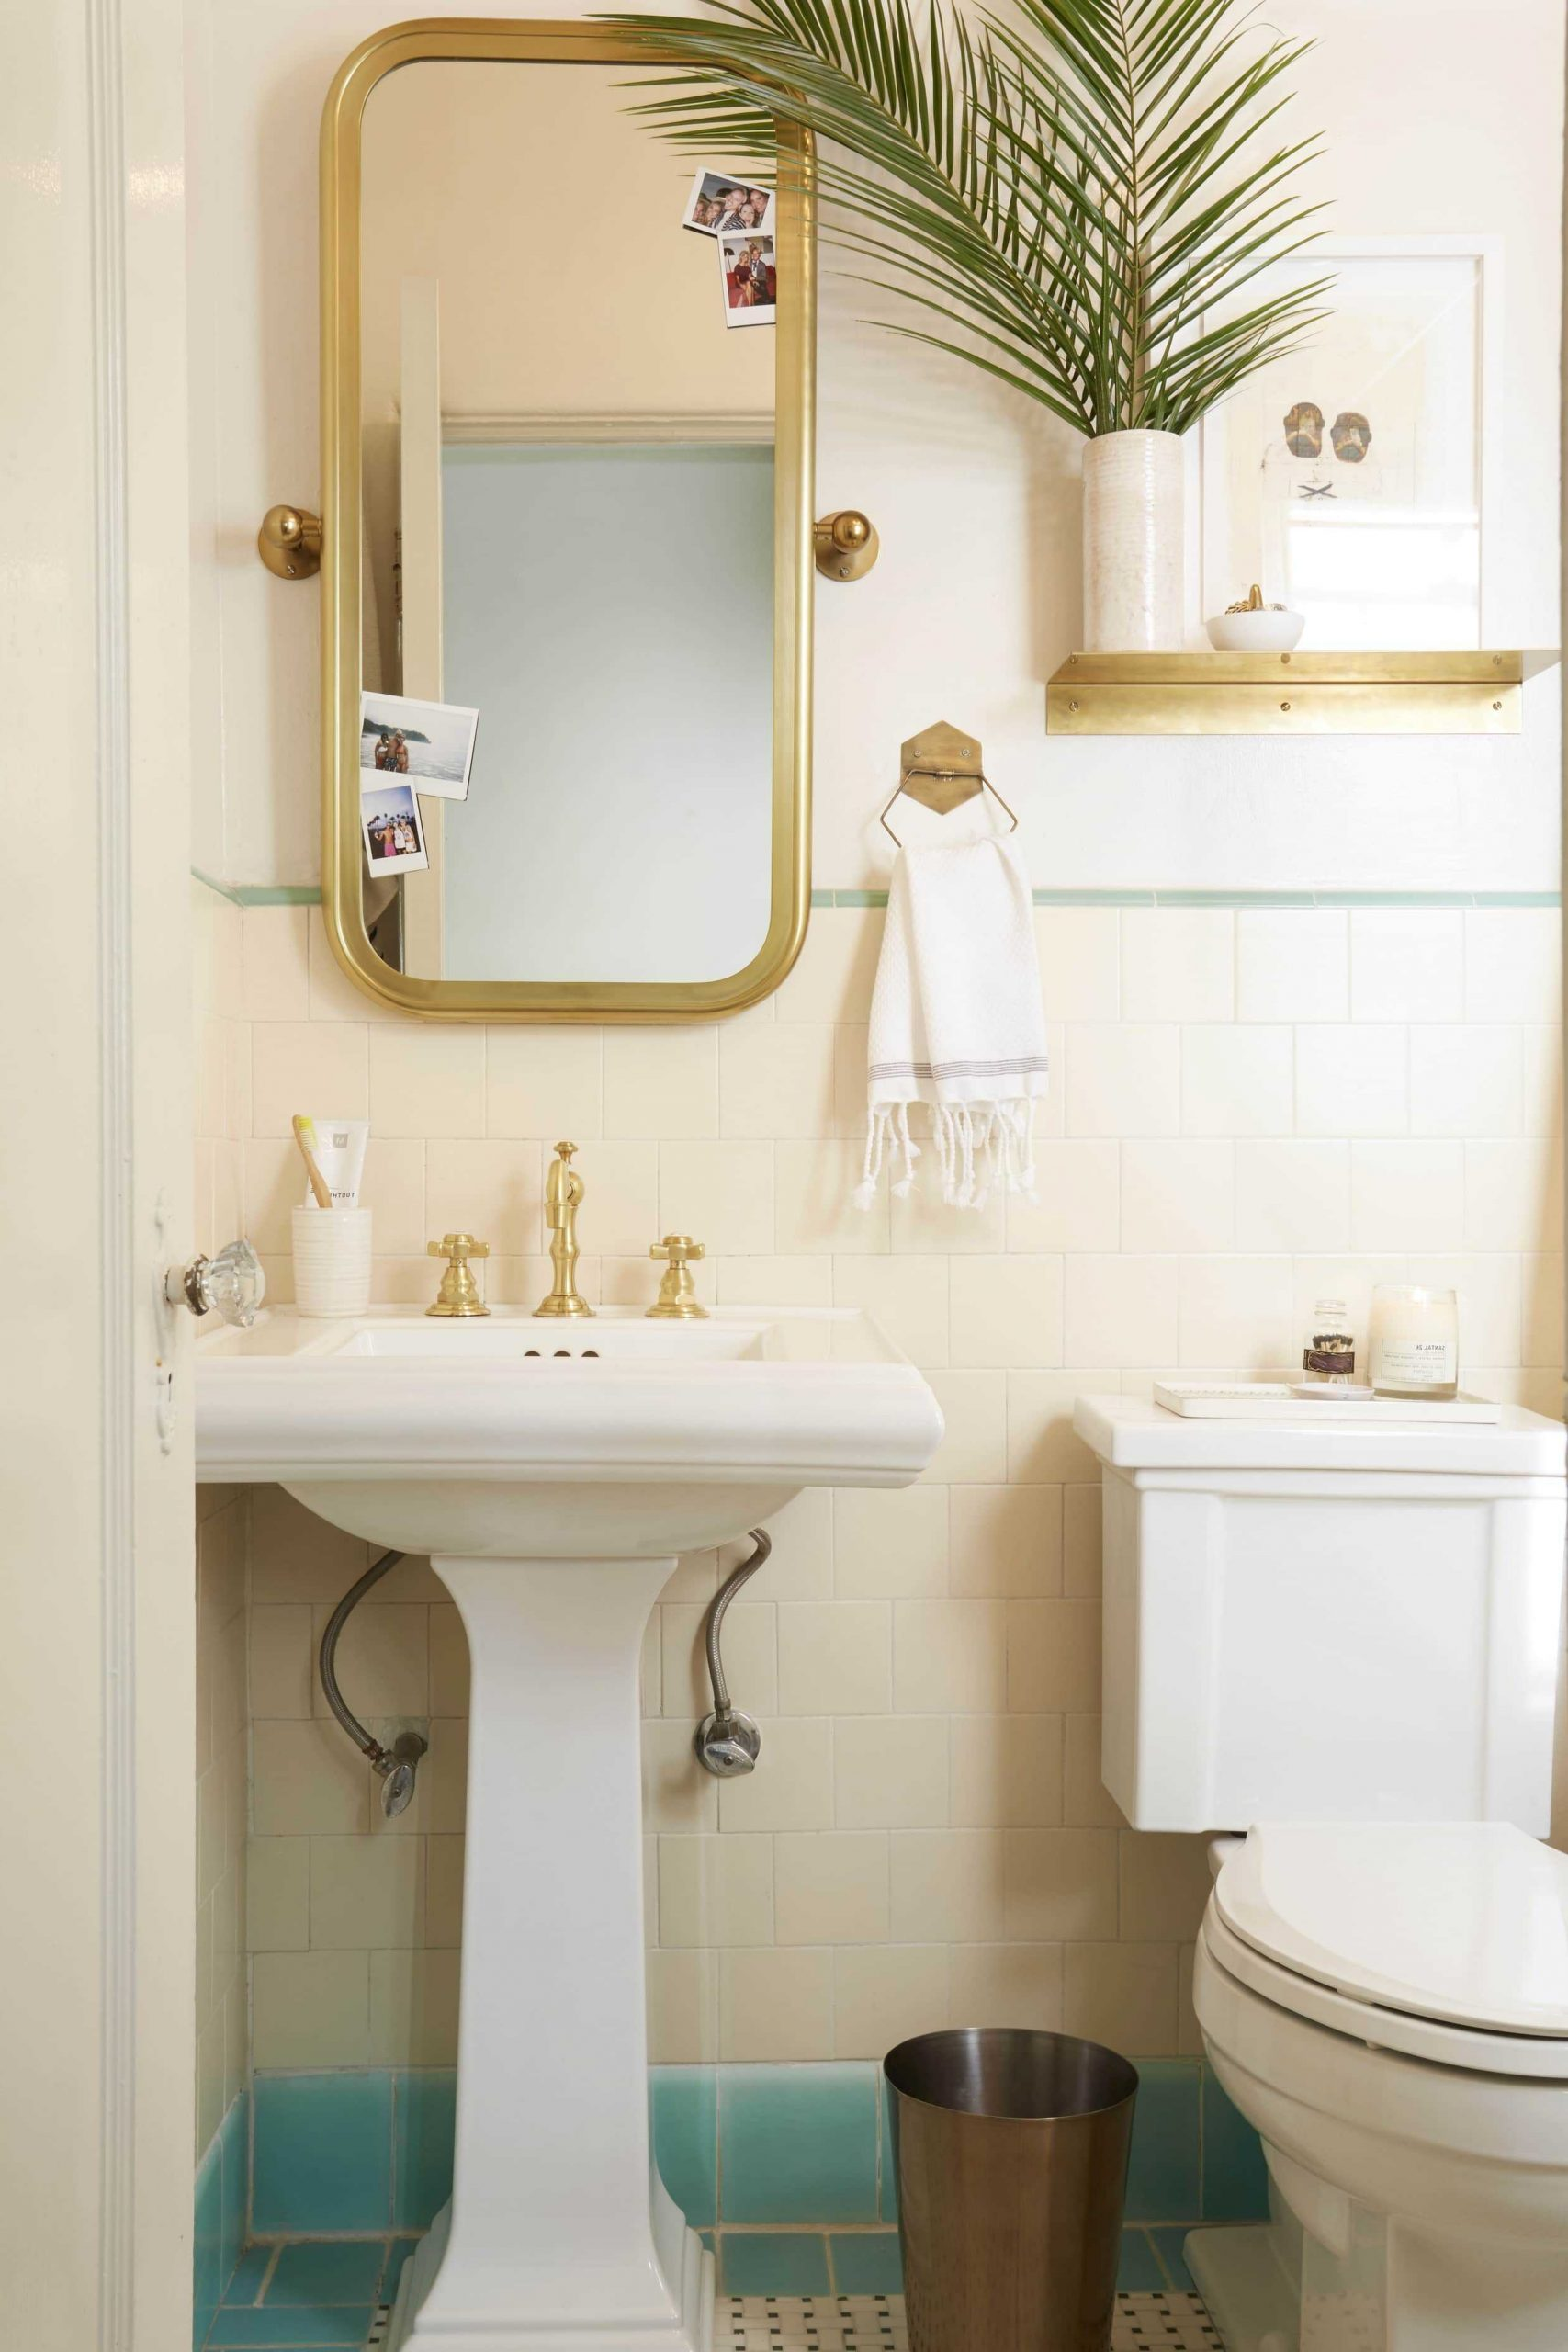 If You Think Your Rental Bathroom Is Beyond Help, This Post 10+ Worst Bathroom Designs Inspirations